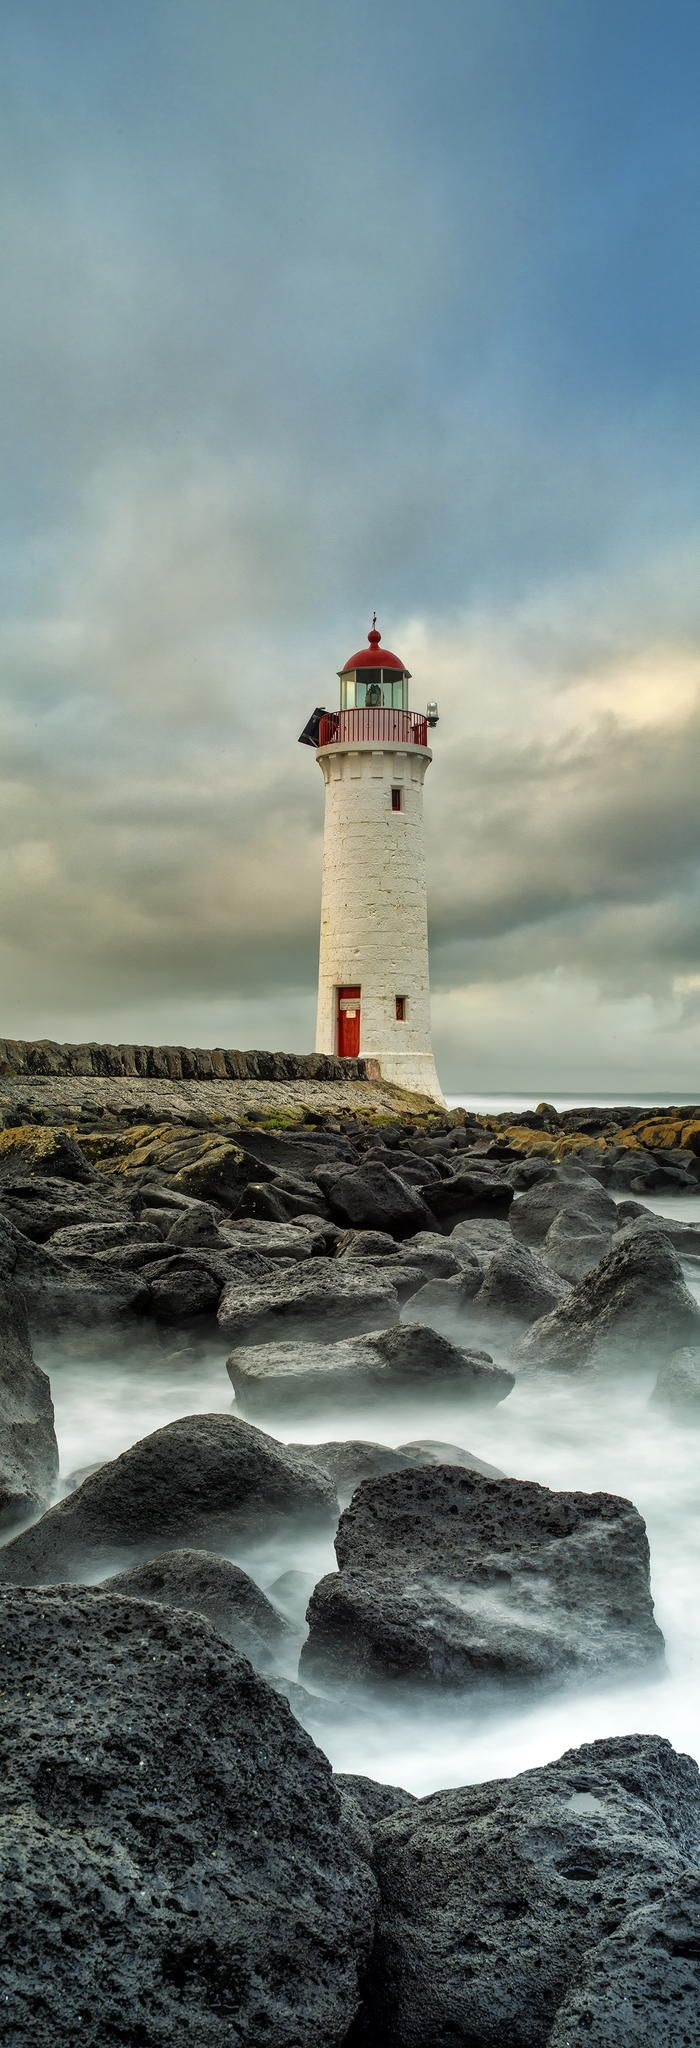 I like this photo because the lighthouse proportioned to the rocks is smaller because it's further in the background